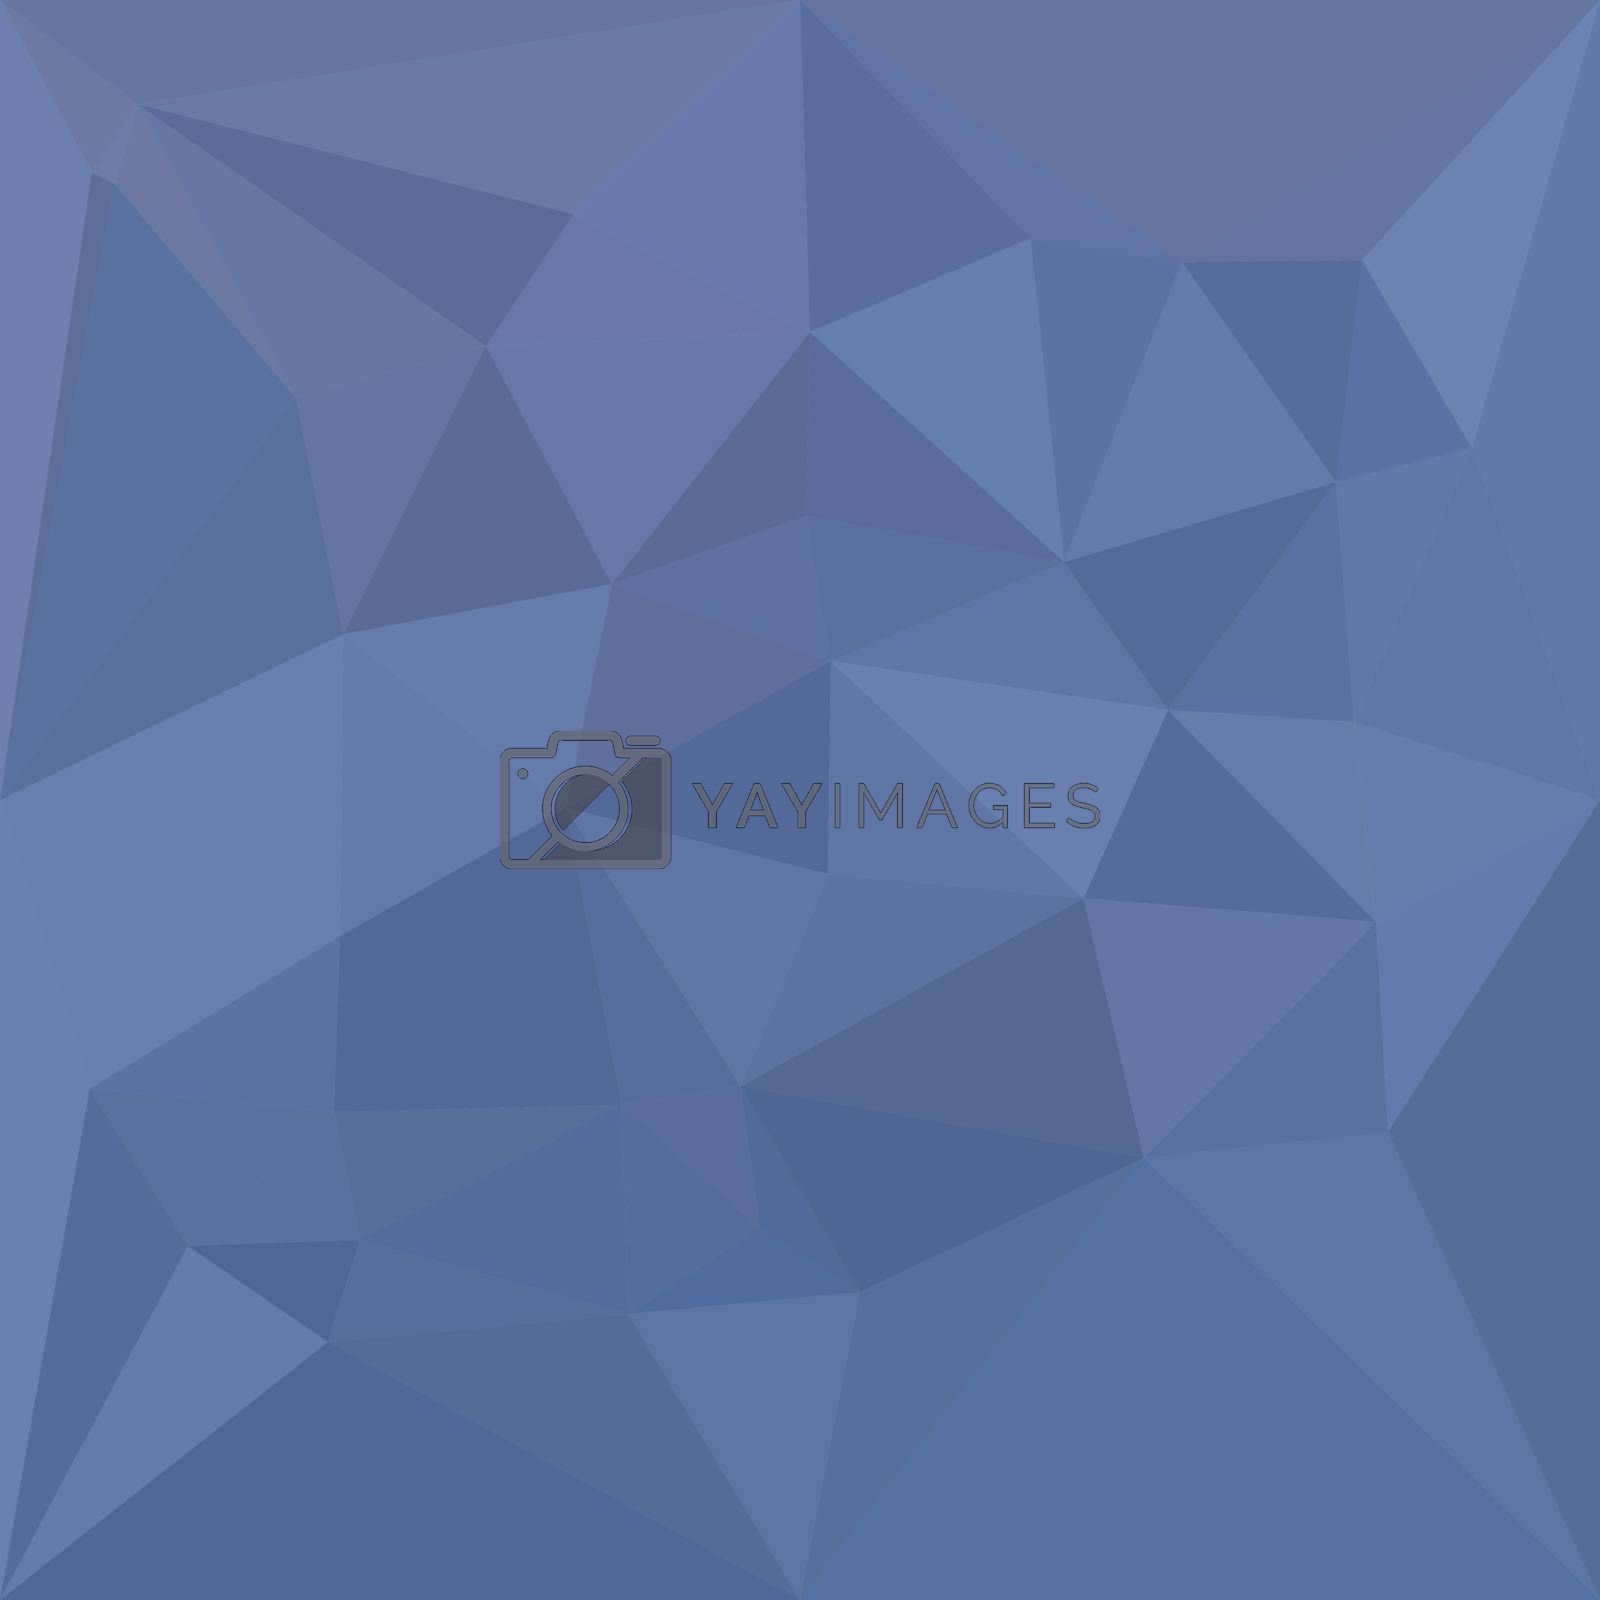 Low polygon style illustration of a cornflower blue abstract geometric background.